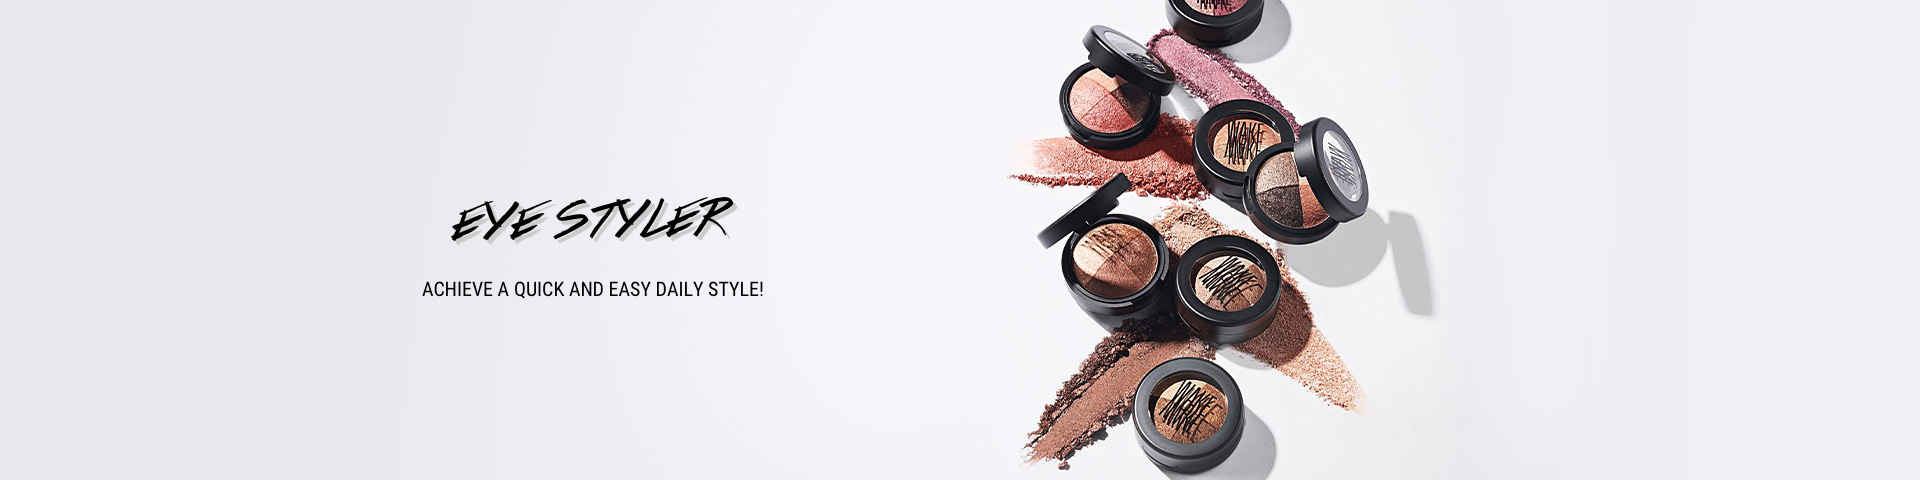 EYE STYLER Four-color shadow for easy daily styling